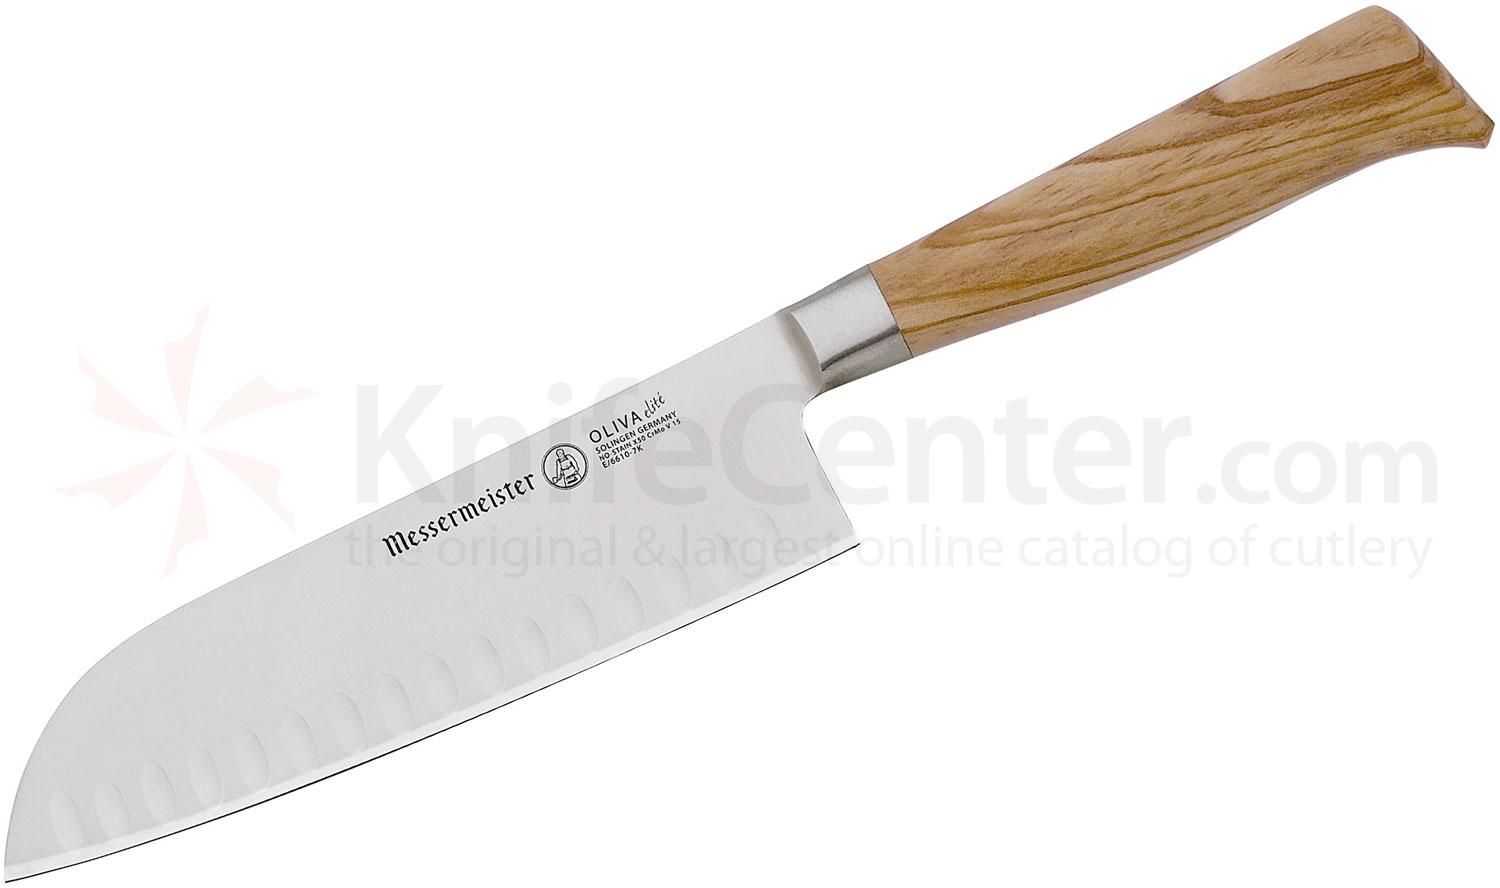 Messermeister Oliva Elite 7 inch Kullenschliff Santoku Knife, Olive Wood Handle